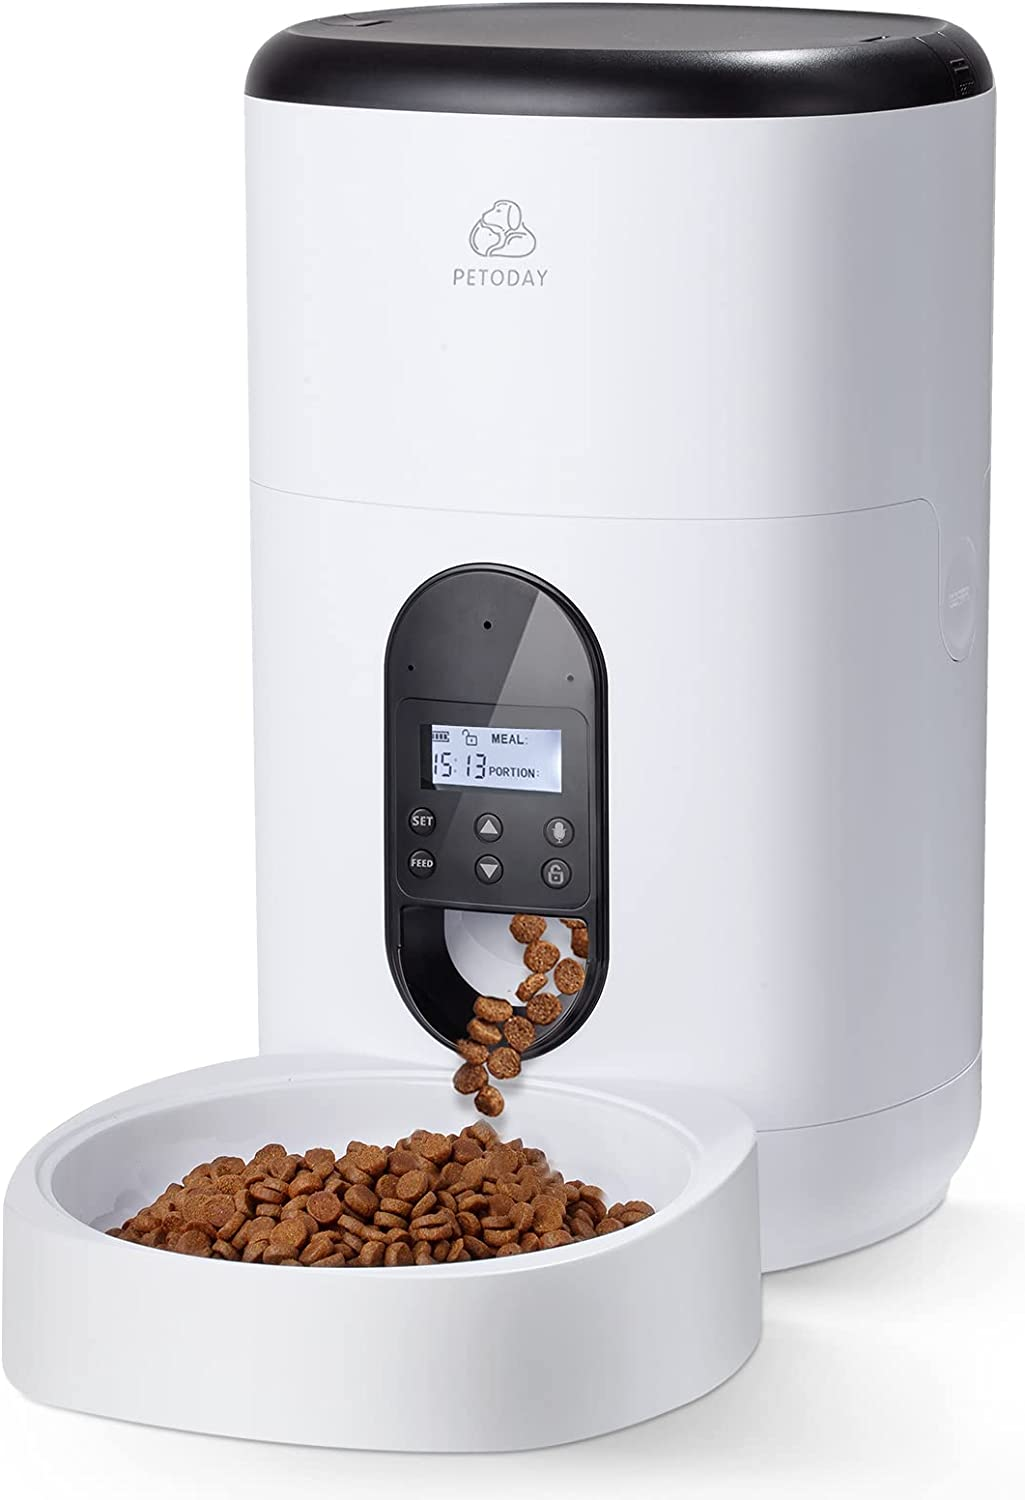 PETODAY 4L Automatic Cat Feeder,Timed Feeder with Voice Recorder, Dry Food Dispenser for Cat & Dog, with Programmable Timer for up to 4 Meals per Day, Automatic Pet Feeder Up to 20 Portion